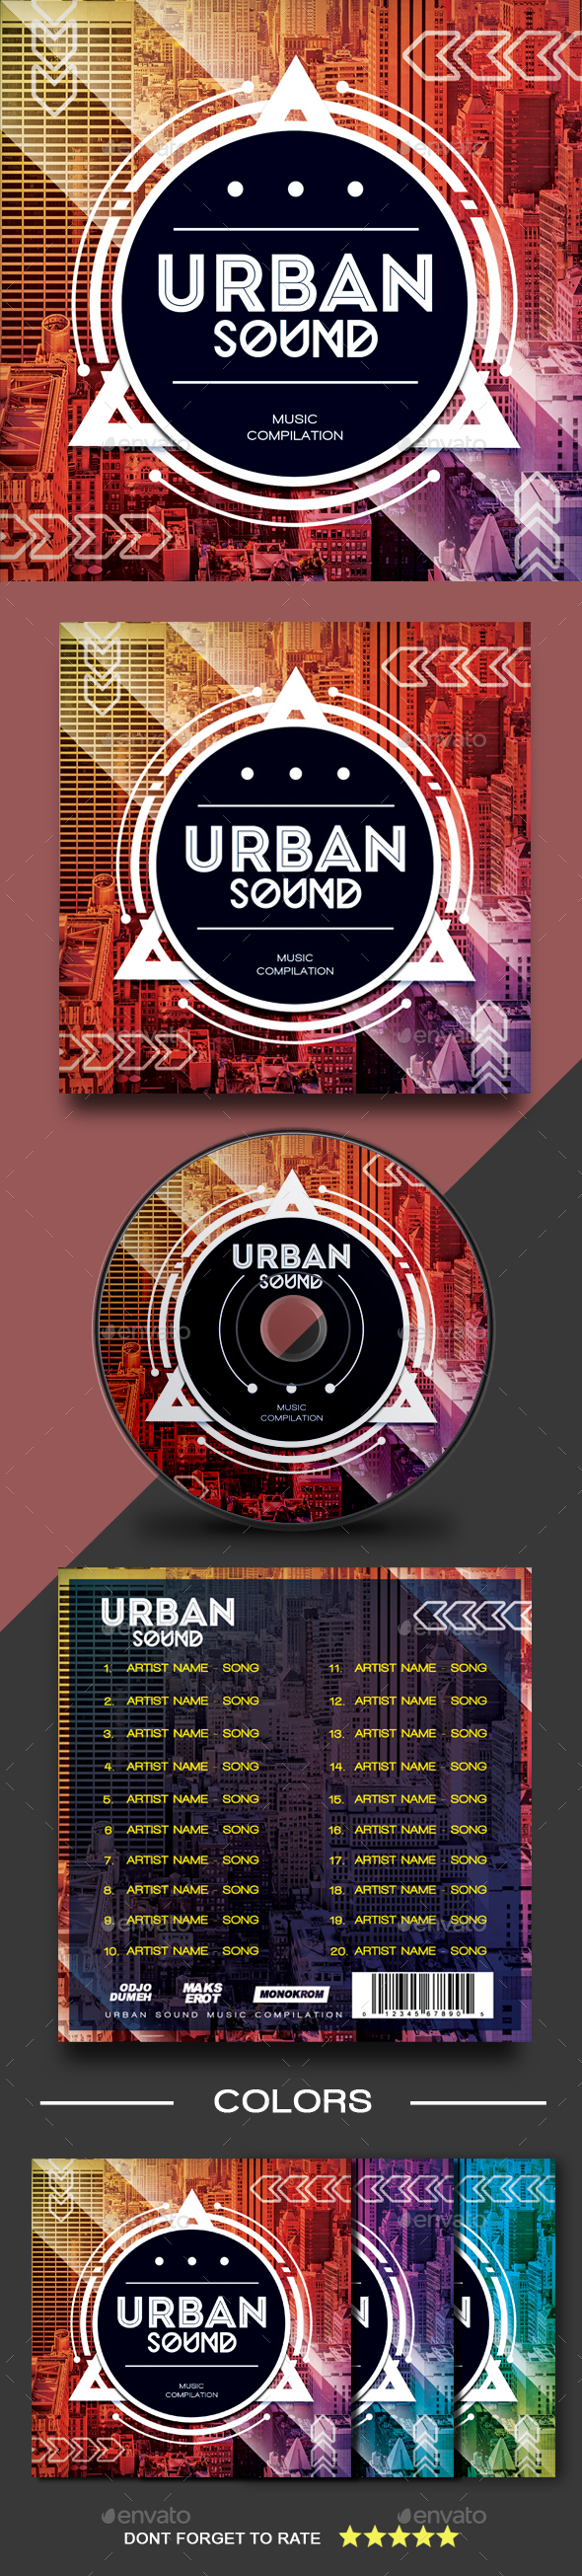 GraphicRiver Urban Sound CD Cover Artwork 21197203